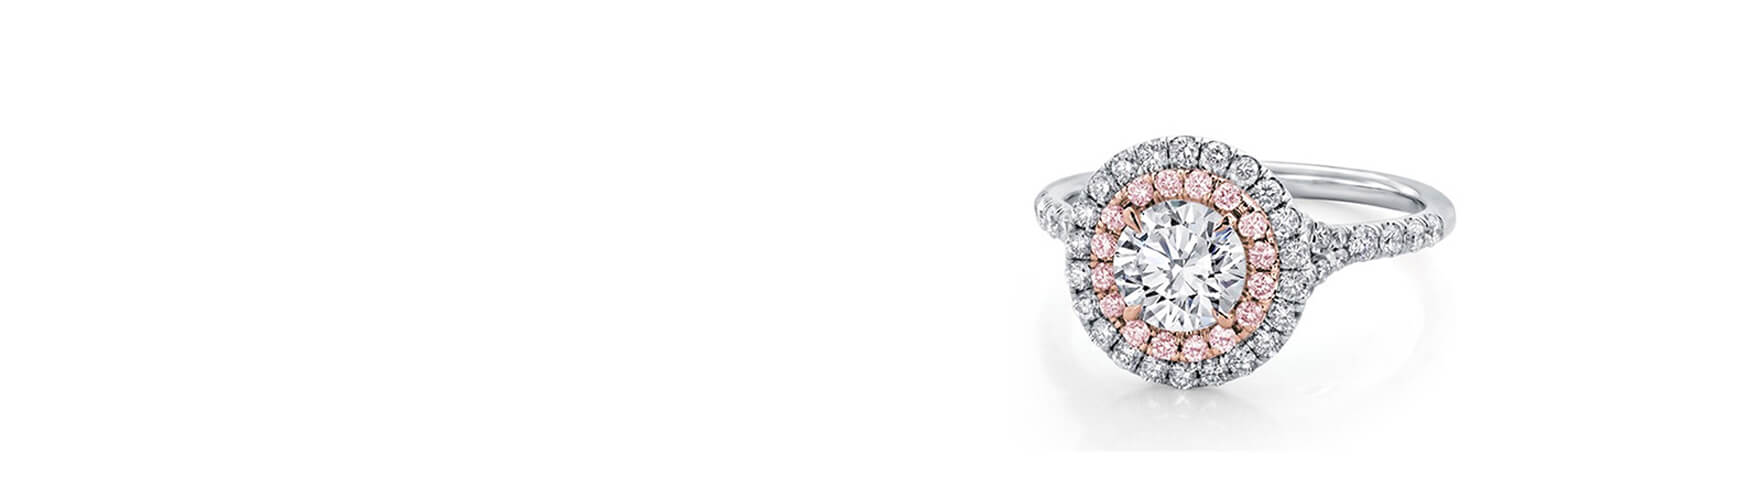 Diamond-Engagement-Ring-1